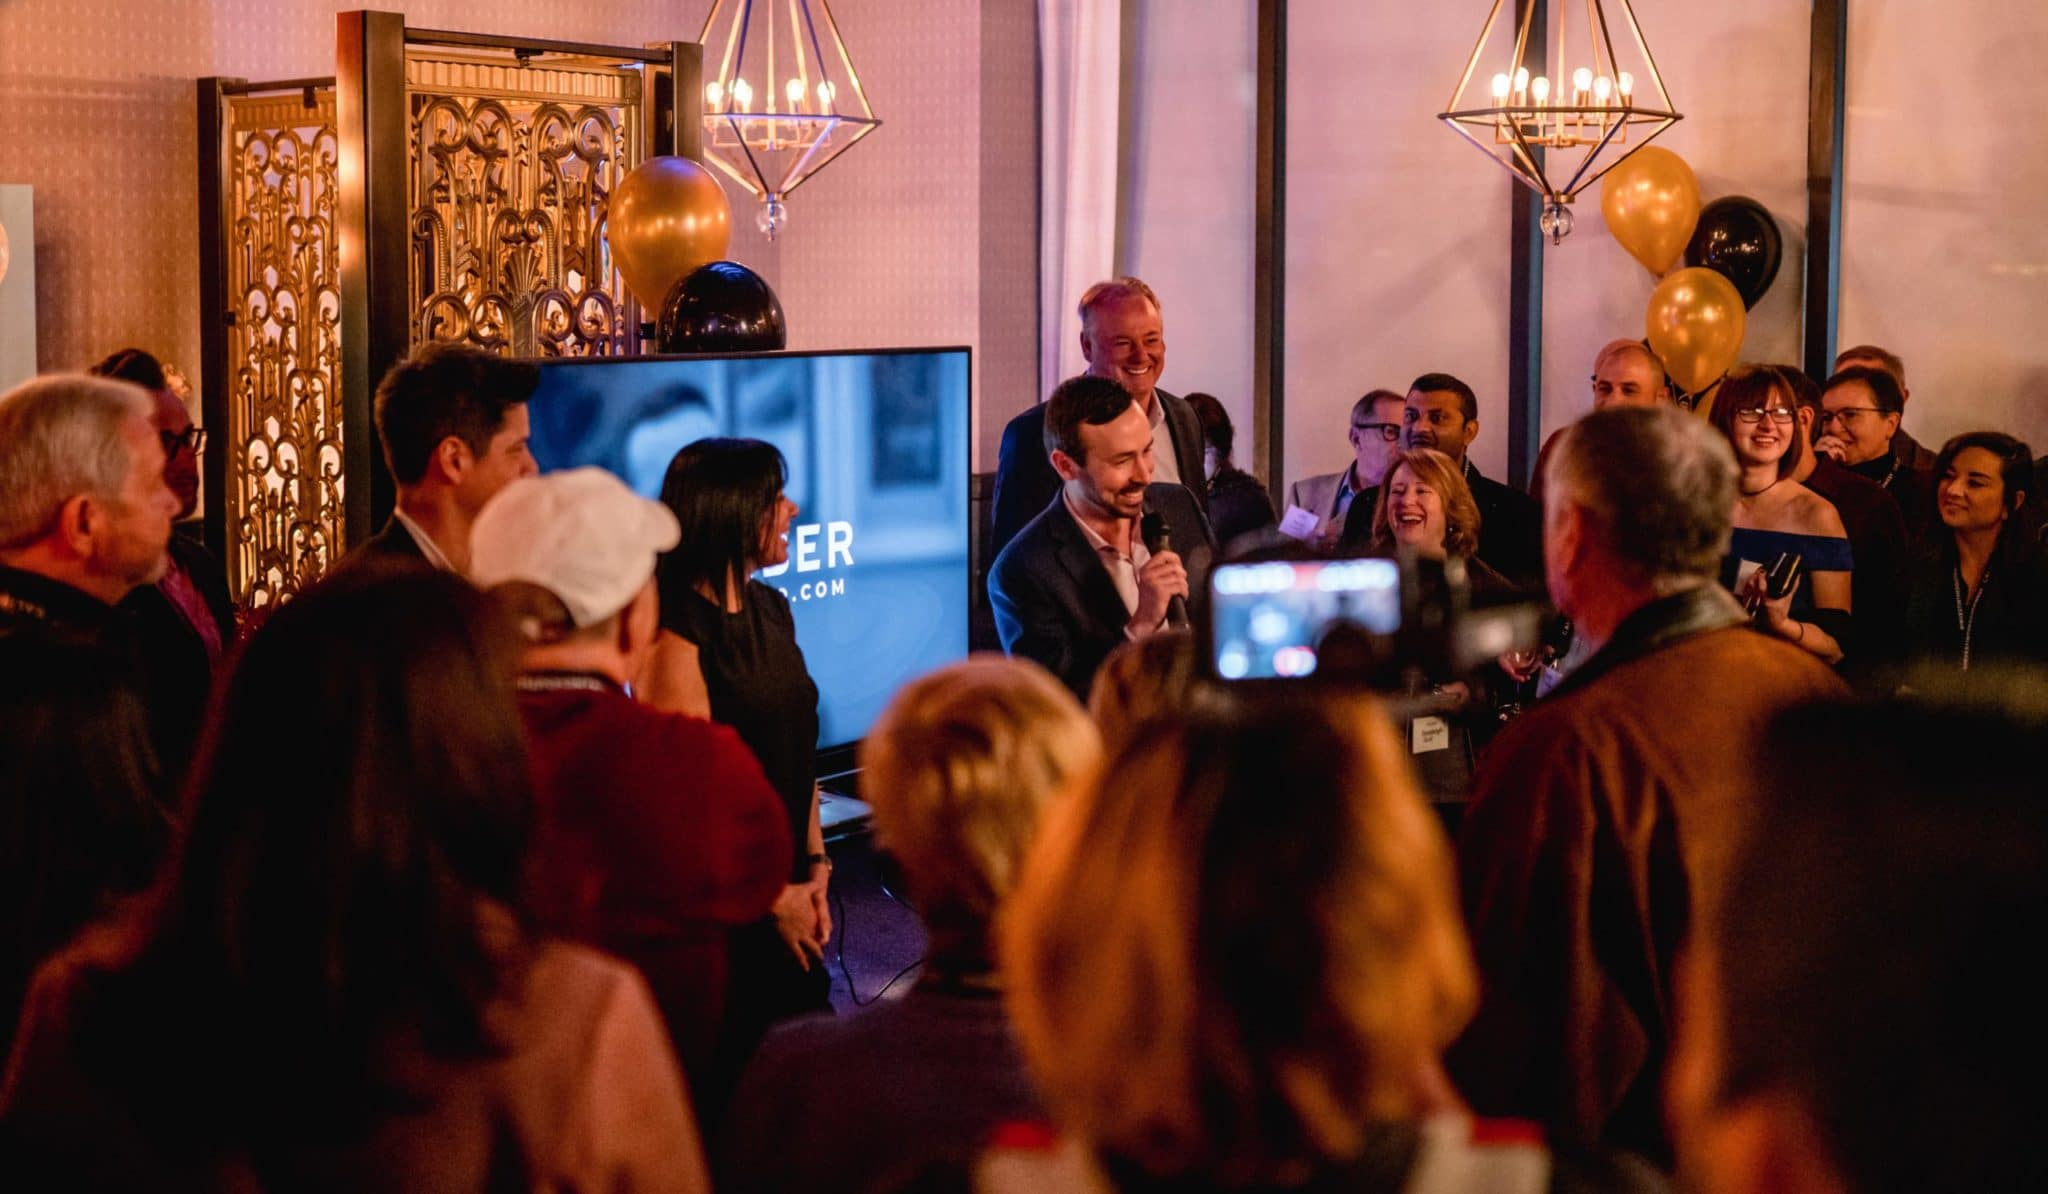 Caliber co-founders present new offering during February launch party